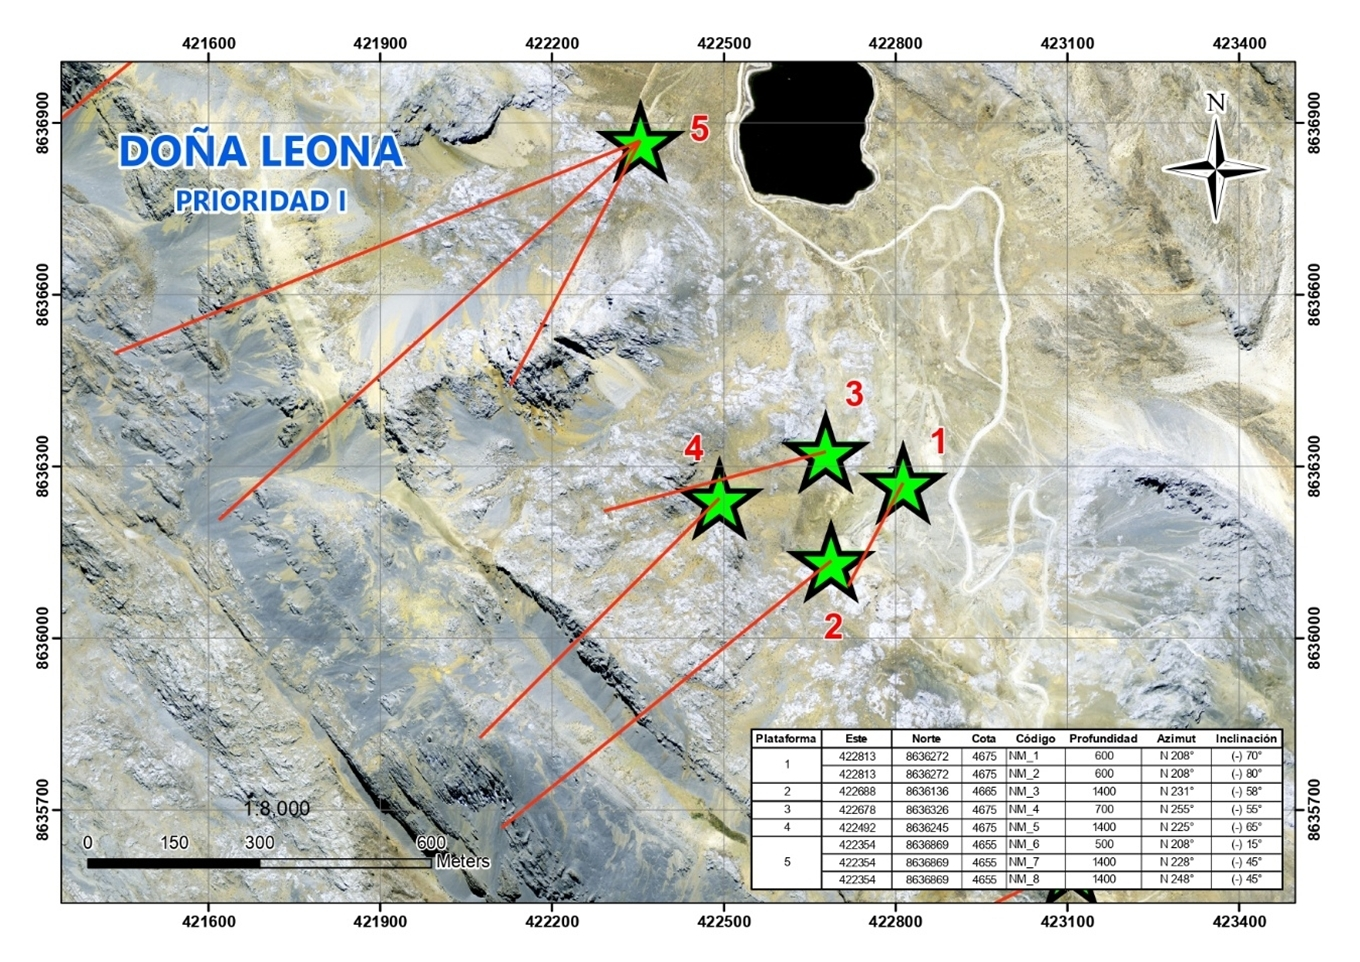 hight resolution of sierra metals receives permits for additional surface exploration drilling and tailing dam expansion at its yauricocha mine business wire